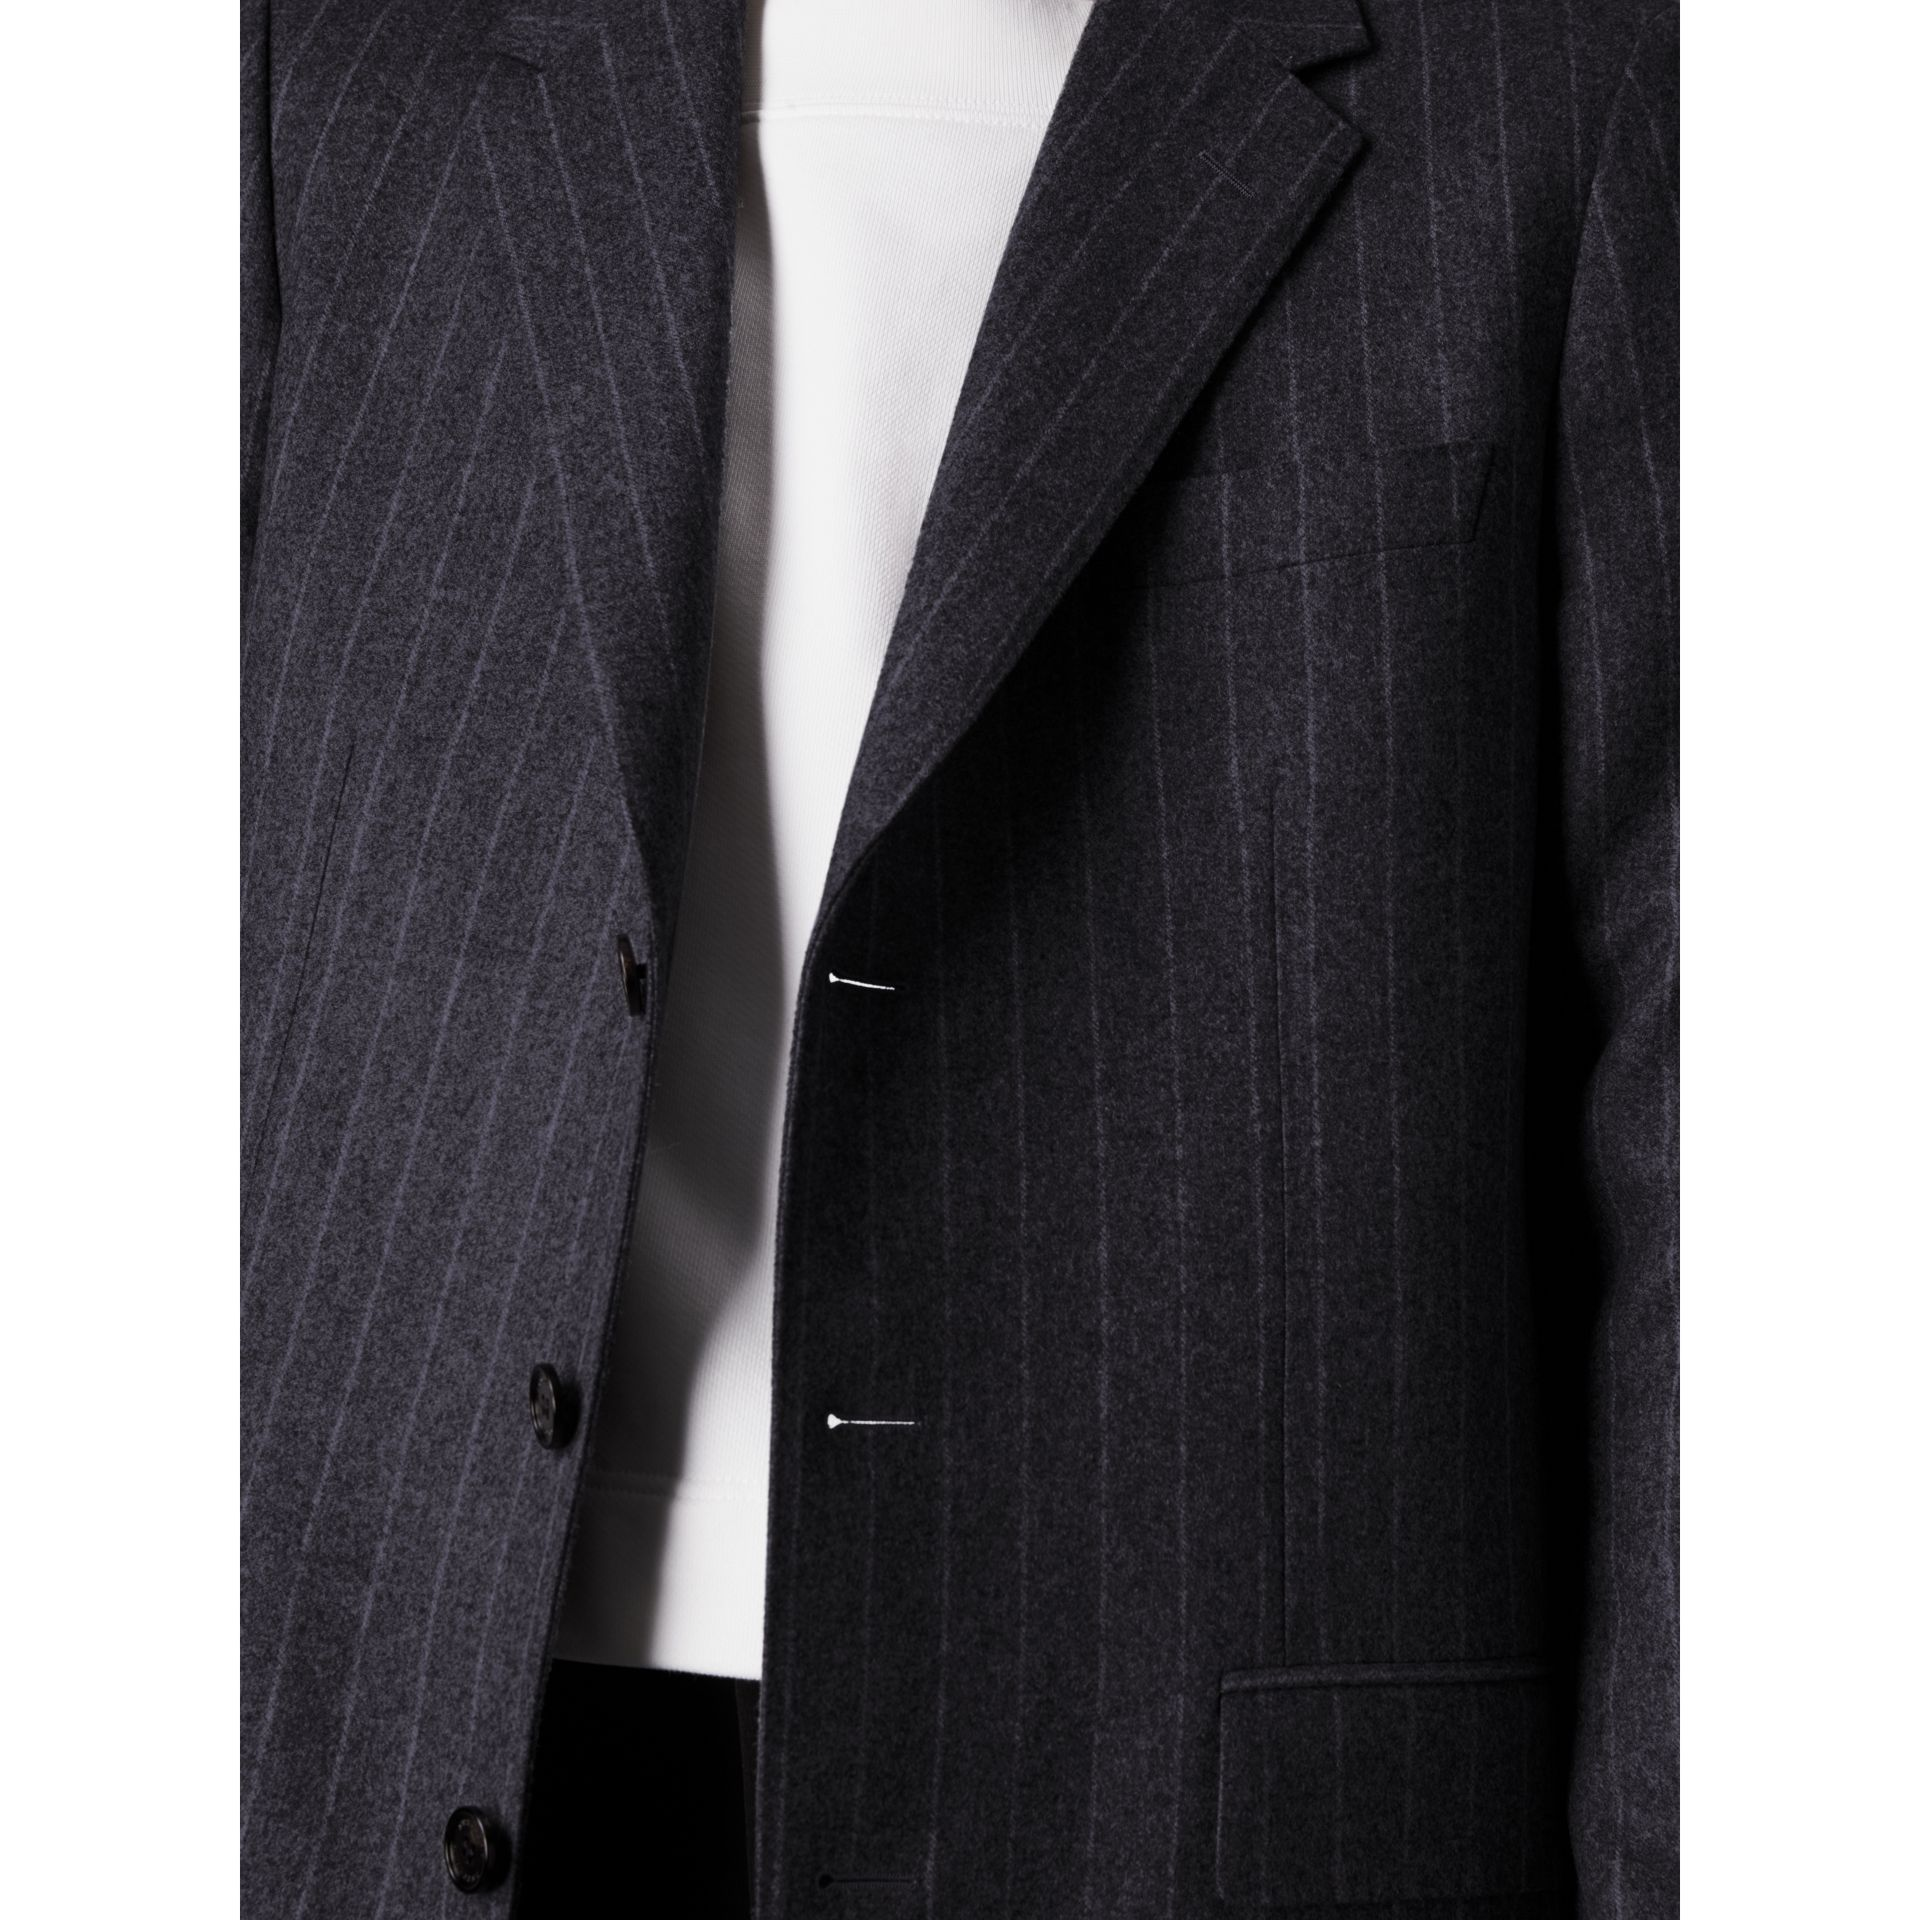 Pinstripe Wool Tailored Jacket in Navy - Men | Burberry United Kingdom - gallery image 1